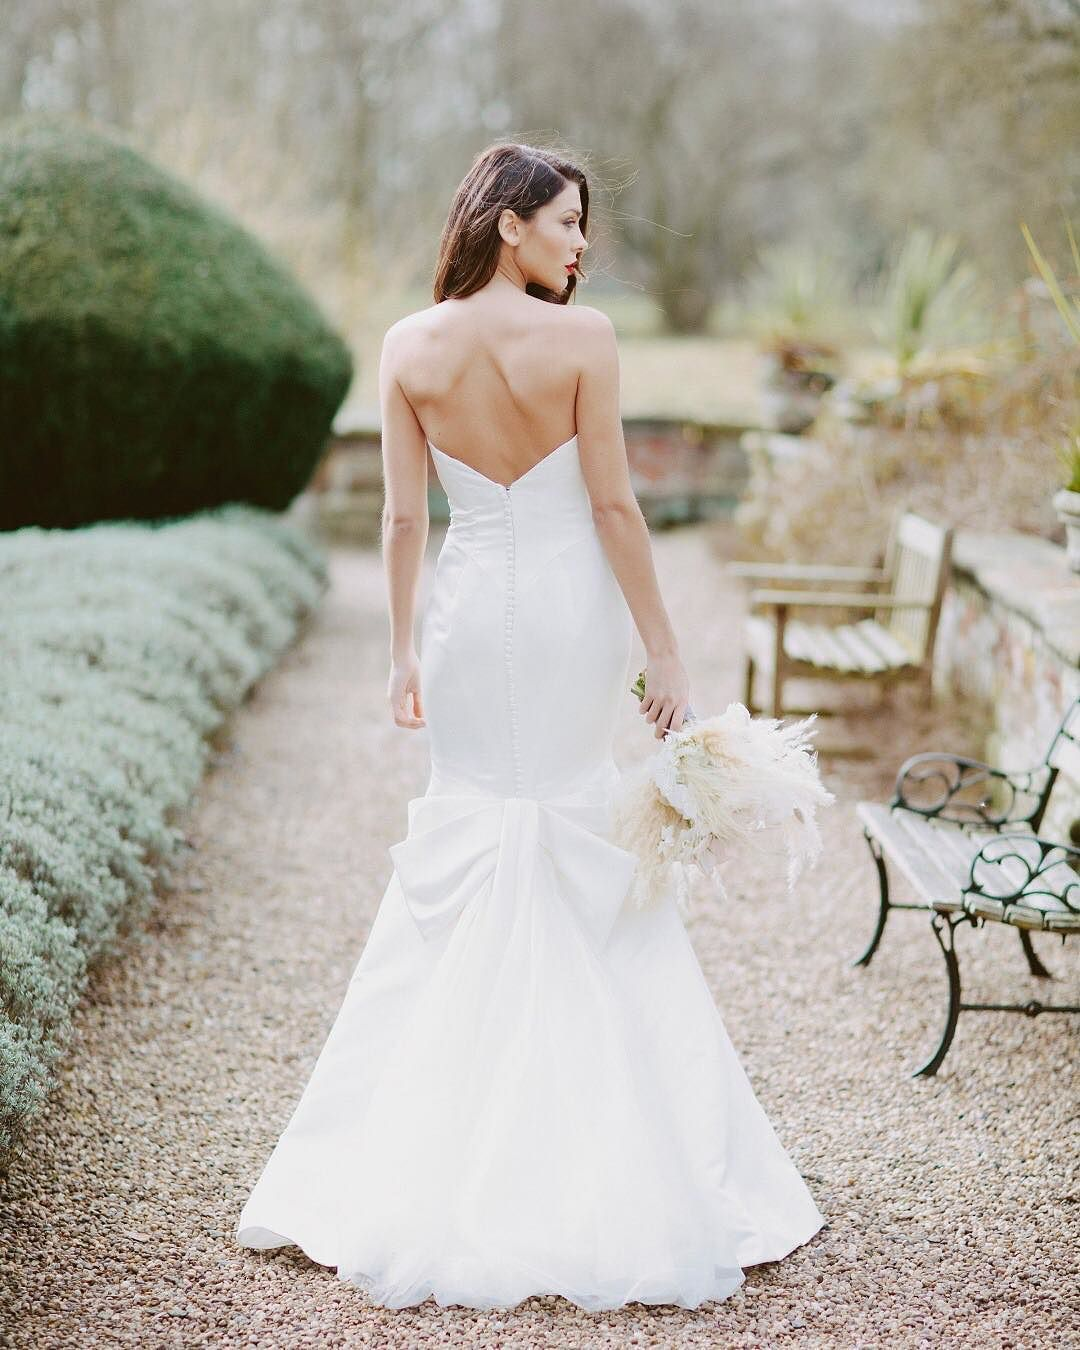 Tietheknot appropriate wedding dress from the